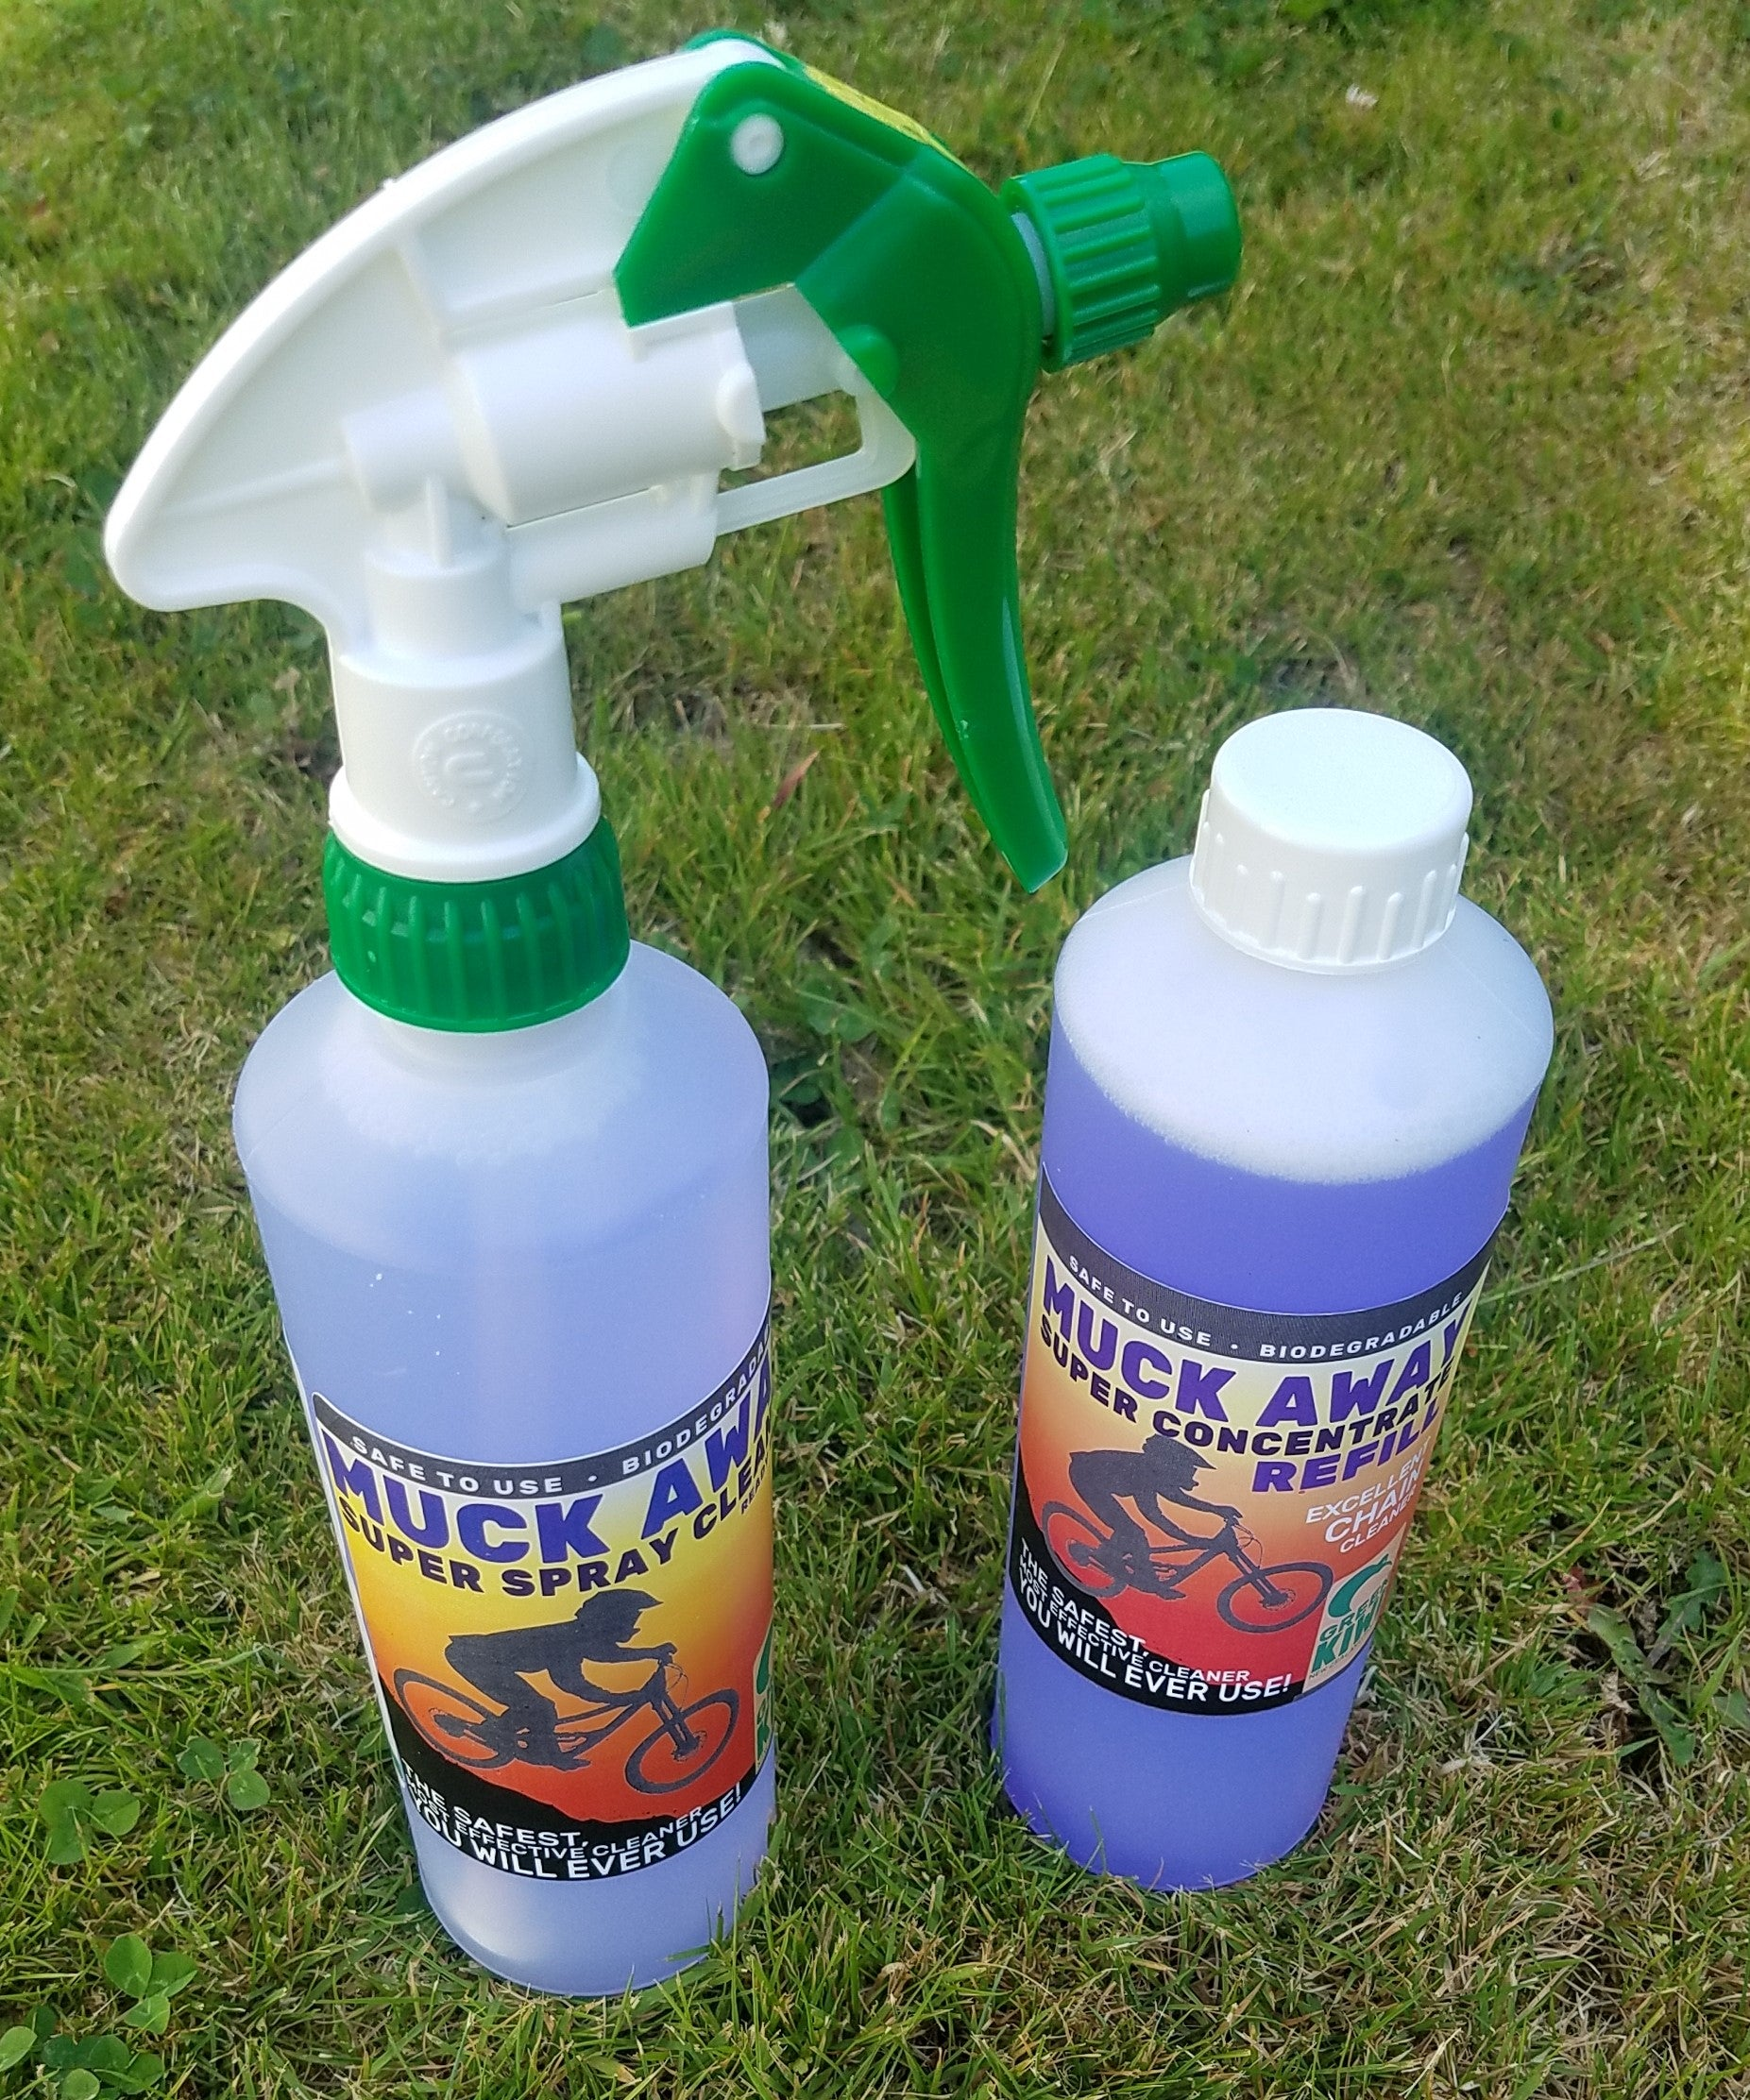 Muck Away Super Bike Cleaner Concentrate 500ml